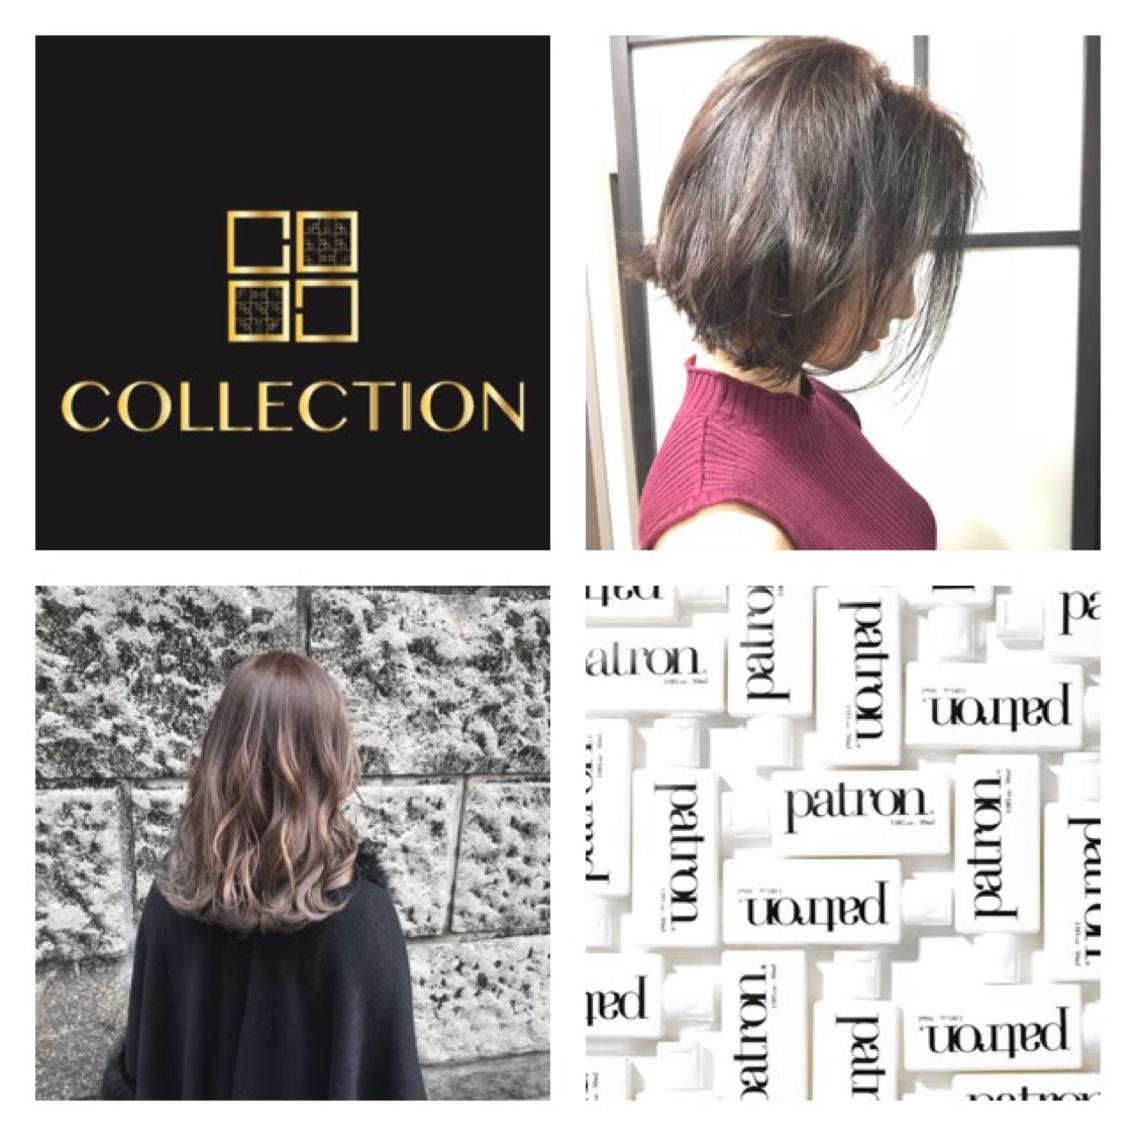 COLLECTION所属・COLLECTION南船場の掲載